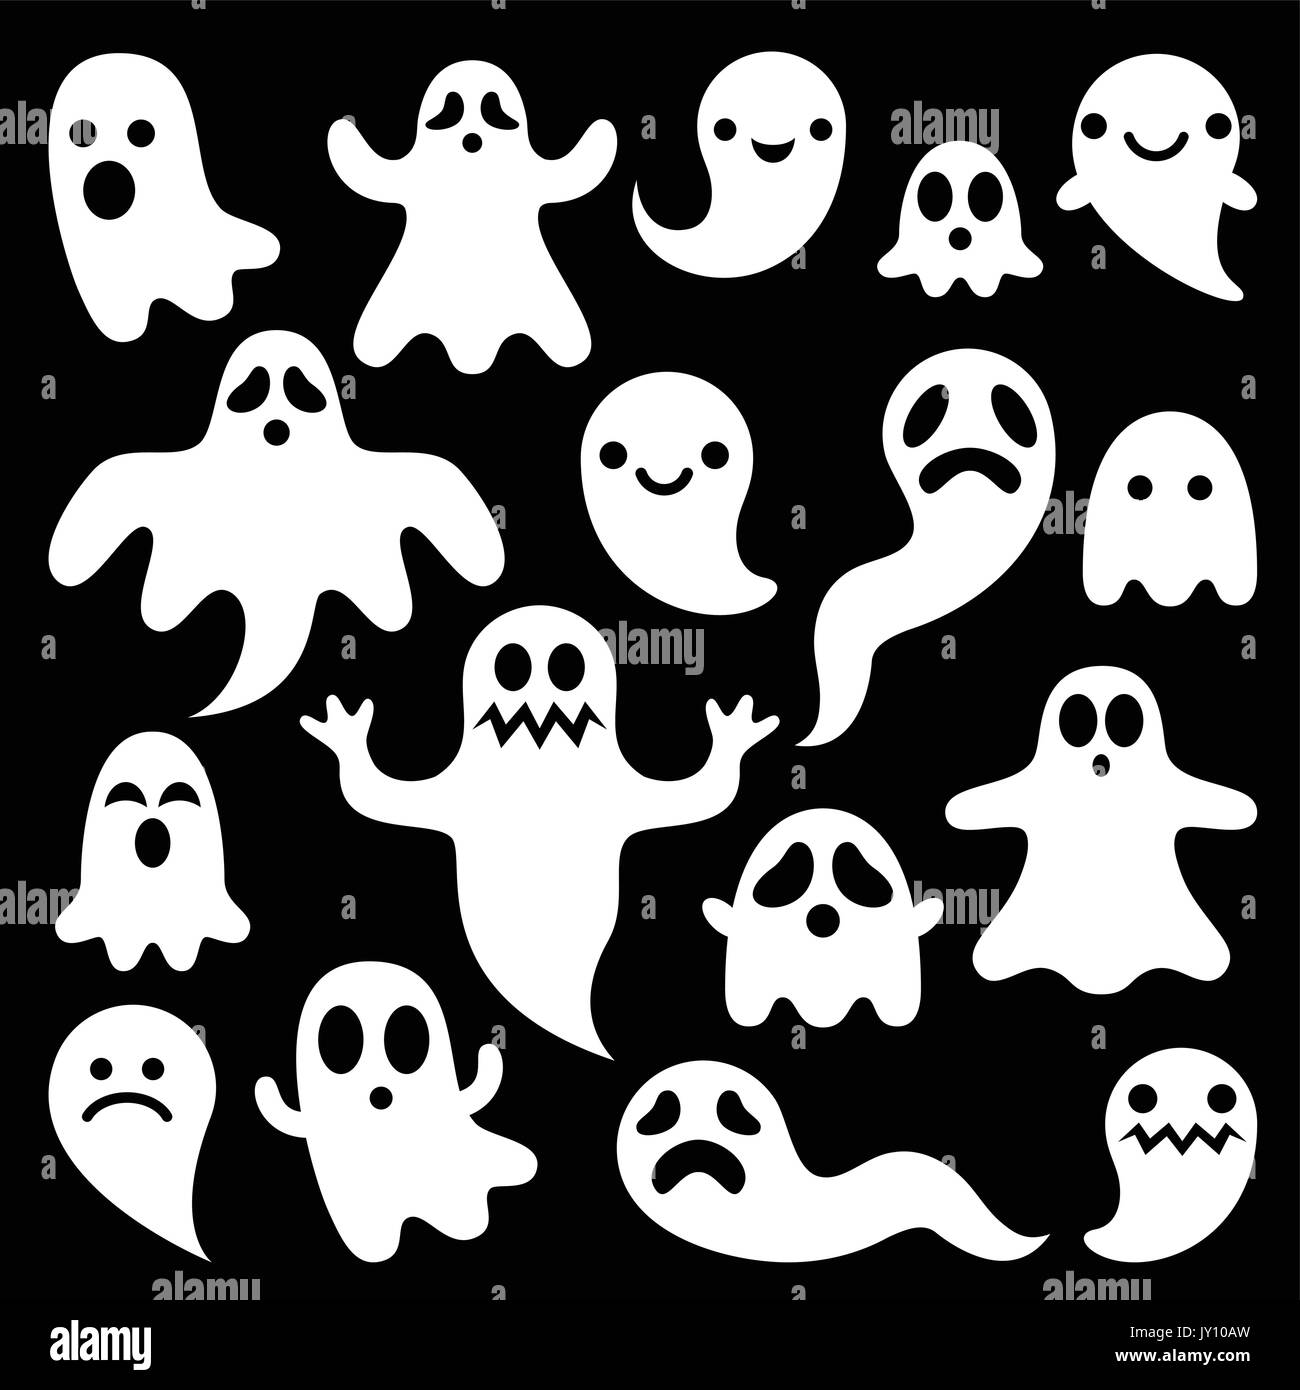 Scary ghosts design halloween characters icons set vector icons scary ghosts design halloween characters icons set vector icons set for halloween cartoon ghost characters isolated on black publicscrutiny Images